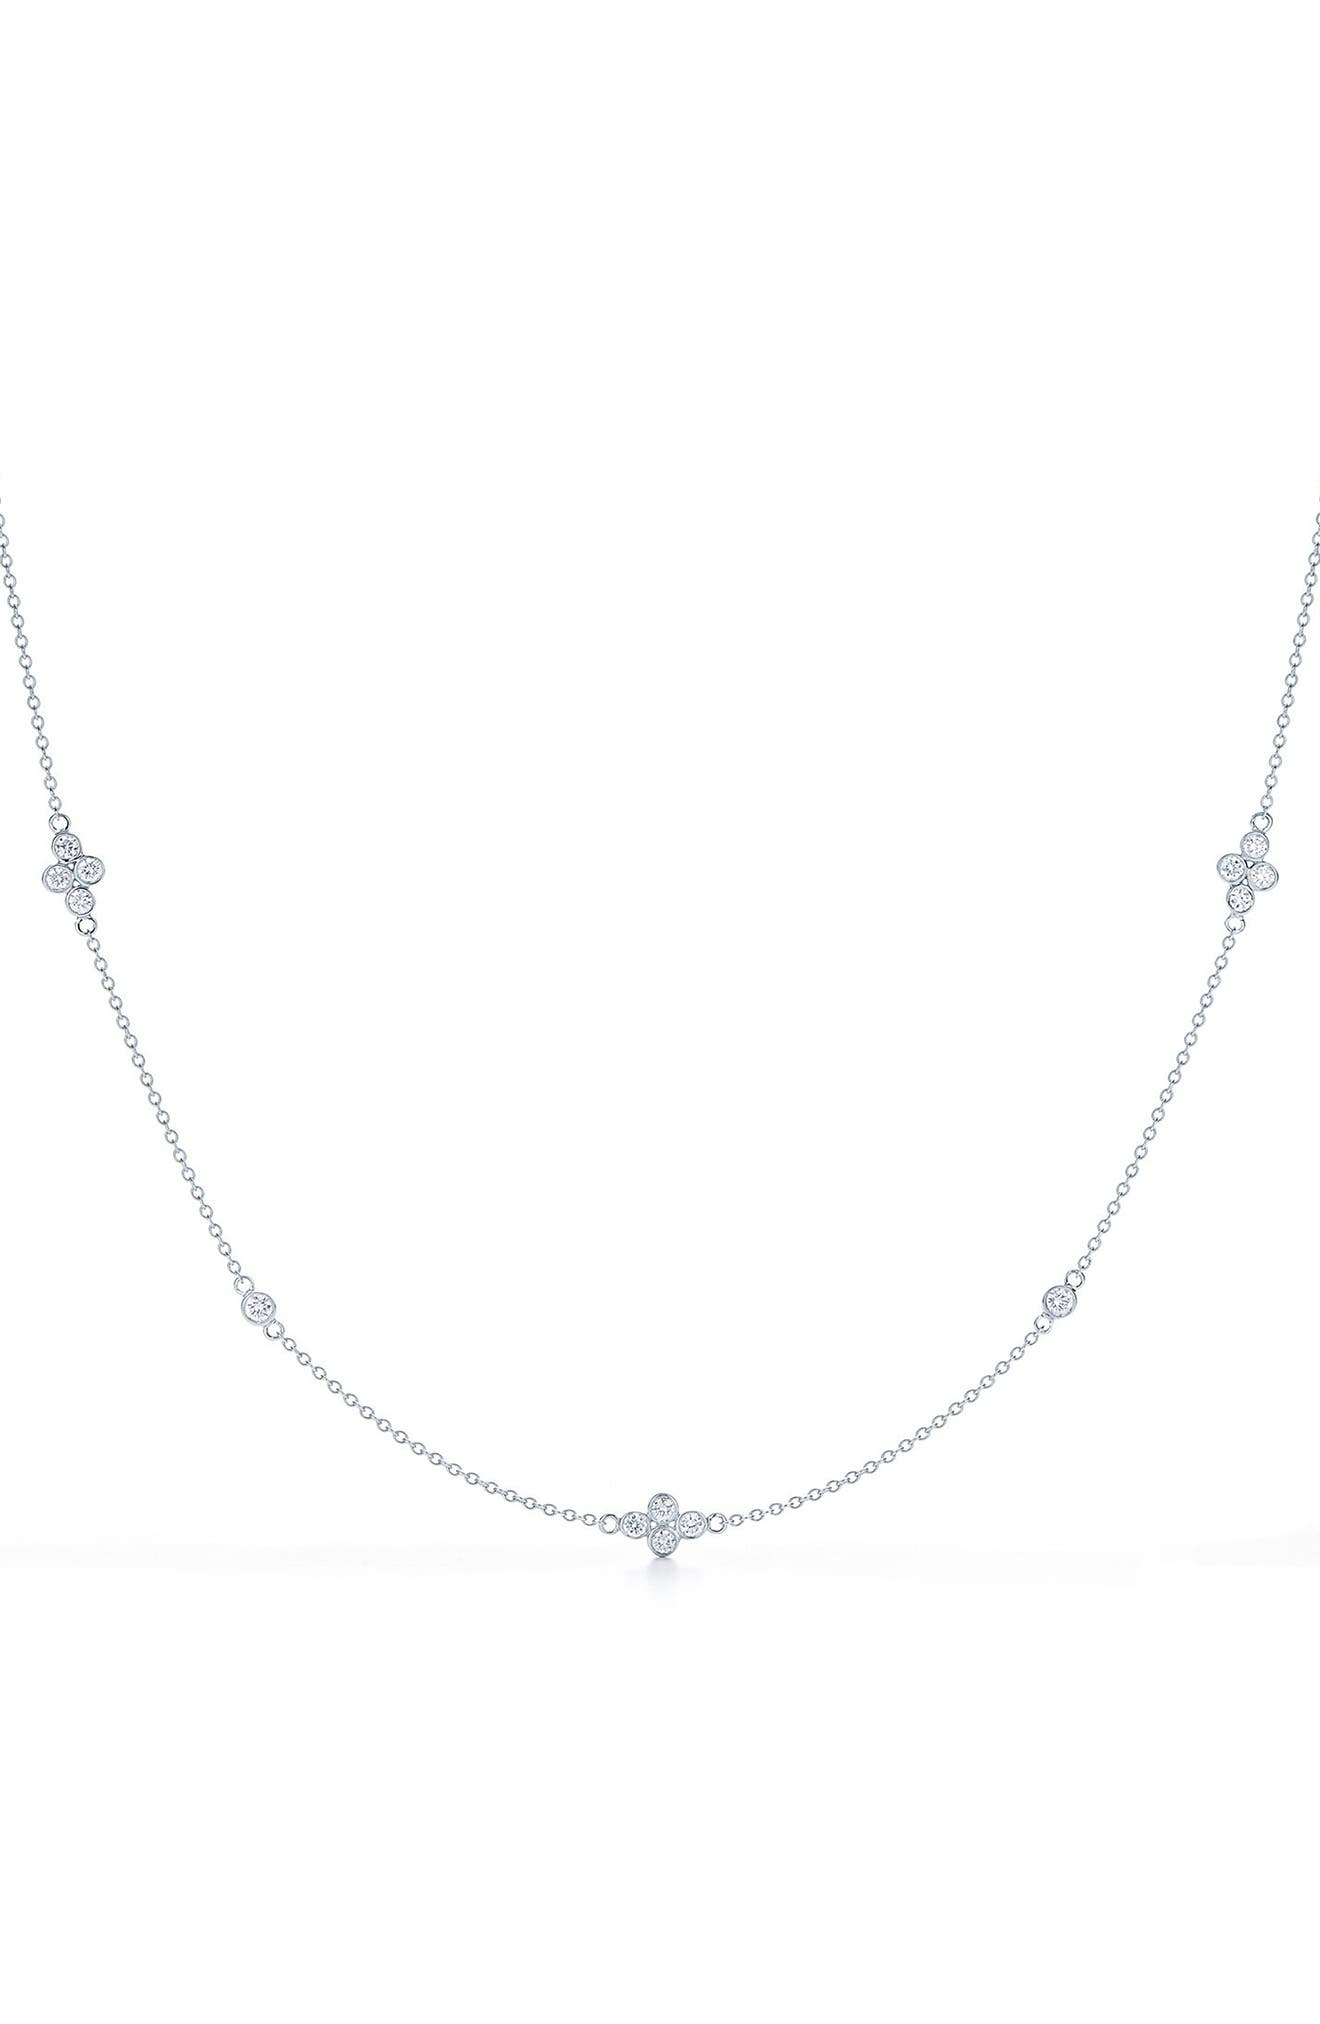 Quad Diamond String Necklace,                         Main,                         color, WHITE GOLD